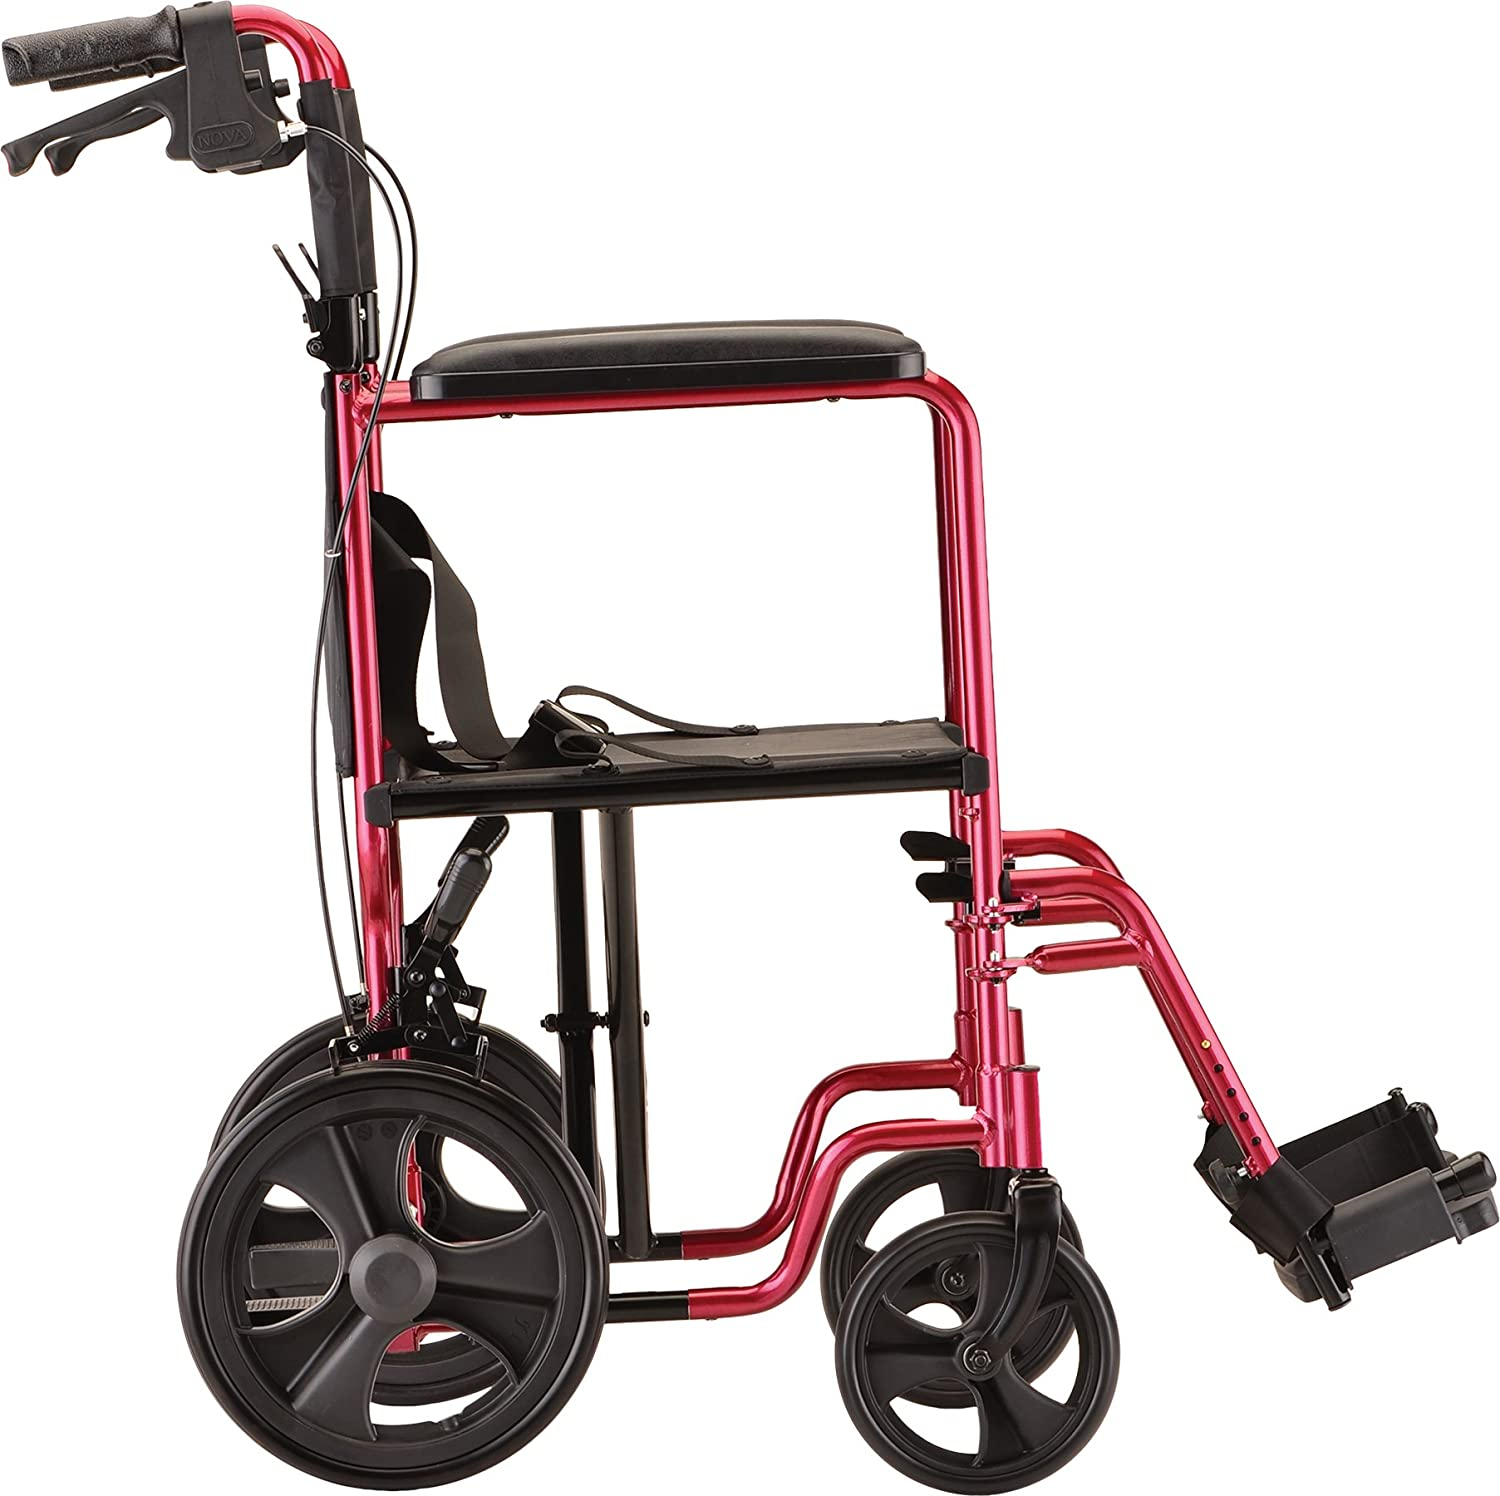 Transport chair amazon - Amazon Com Nova Medical Products 19 Lightweight Transport Chair With 12 Rear Wheels Hand Brakes Red Health Personal Care